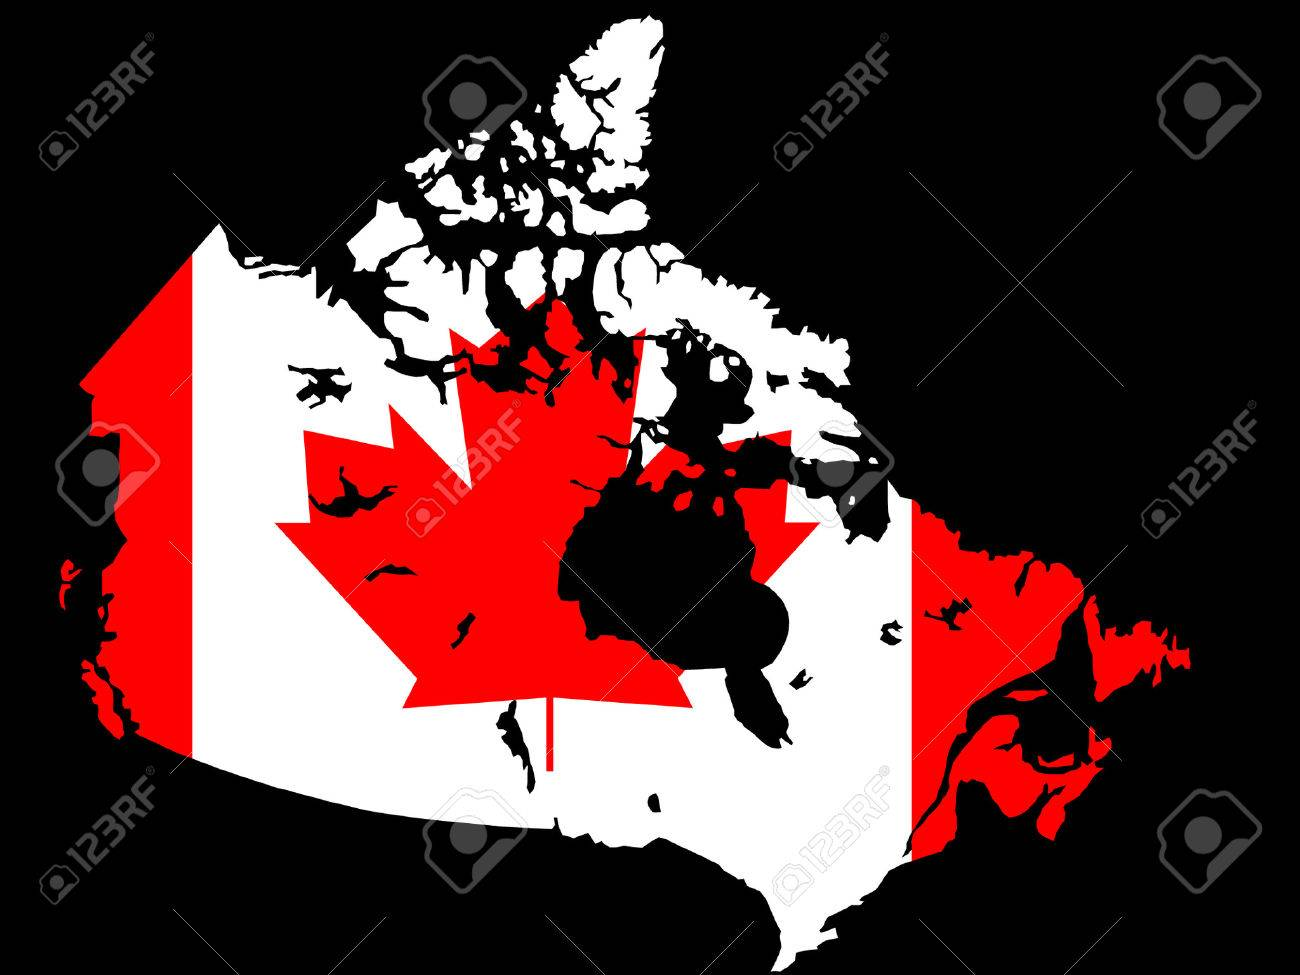 Canadian map and flag illustration Stock Vector - 709369